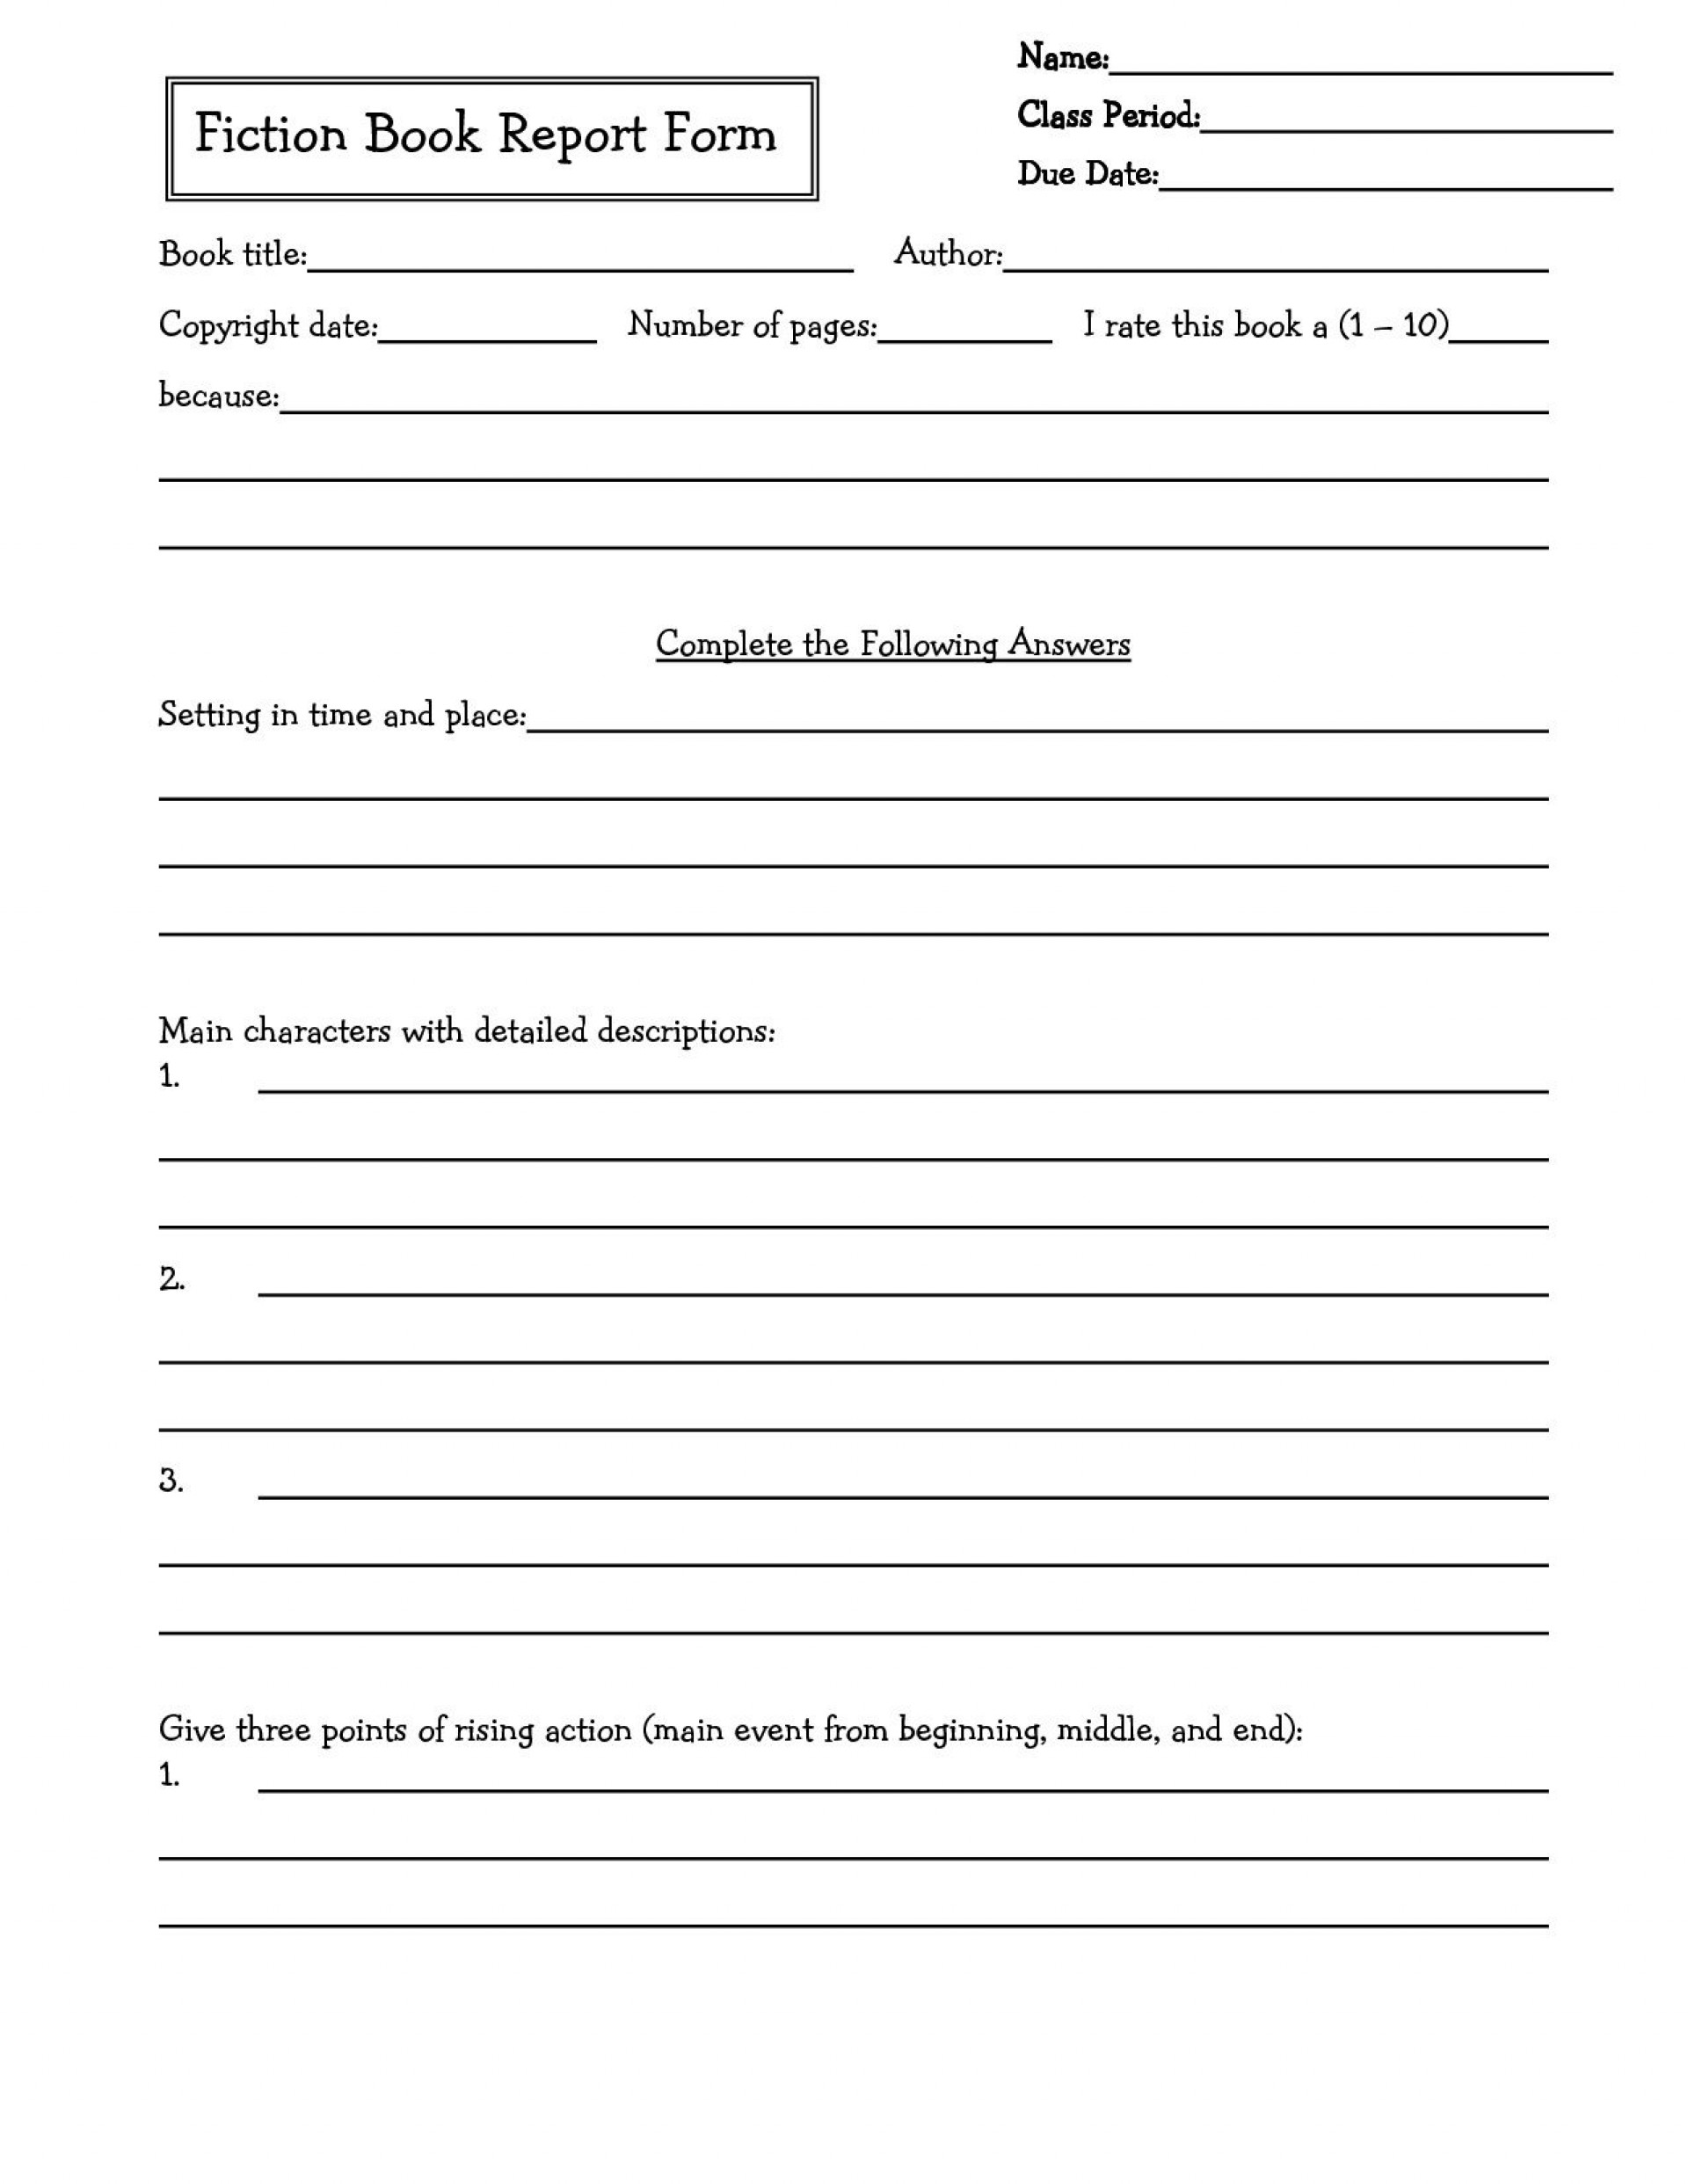 002 Awesome 6th Grade Book Report Template Picture  Sixth Format Printable Middle School1920